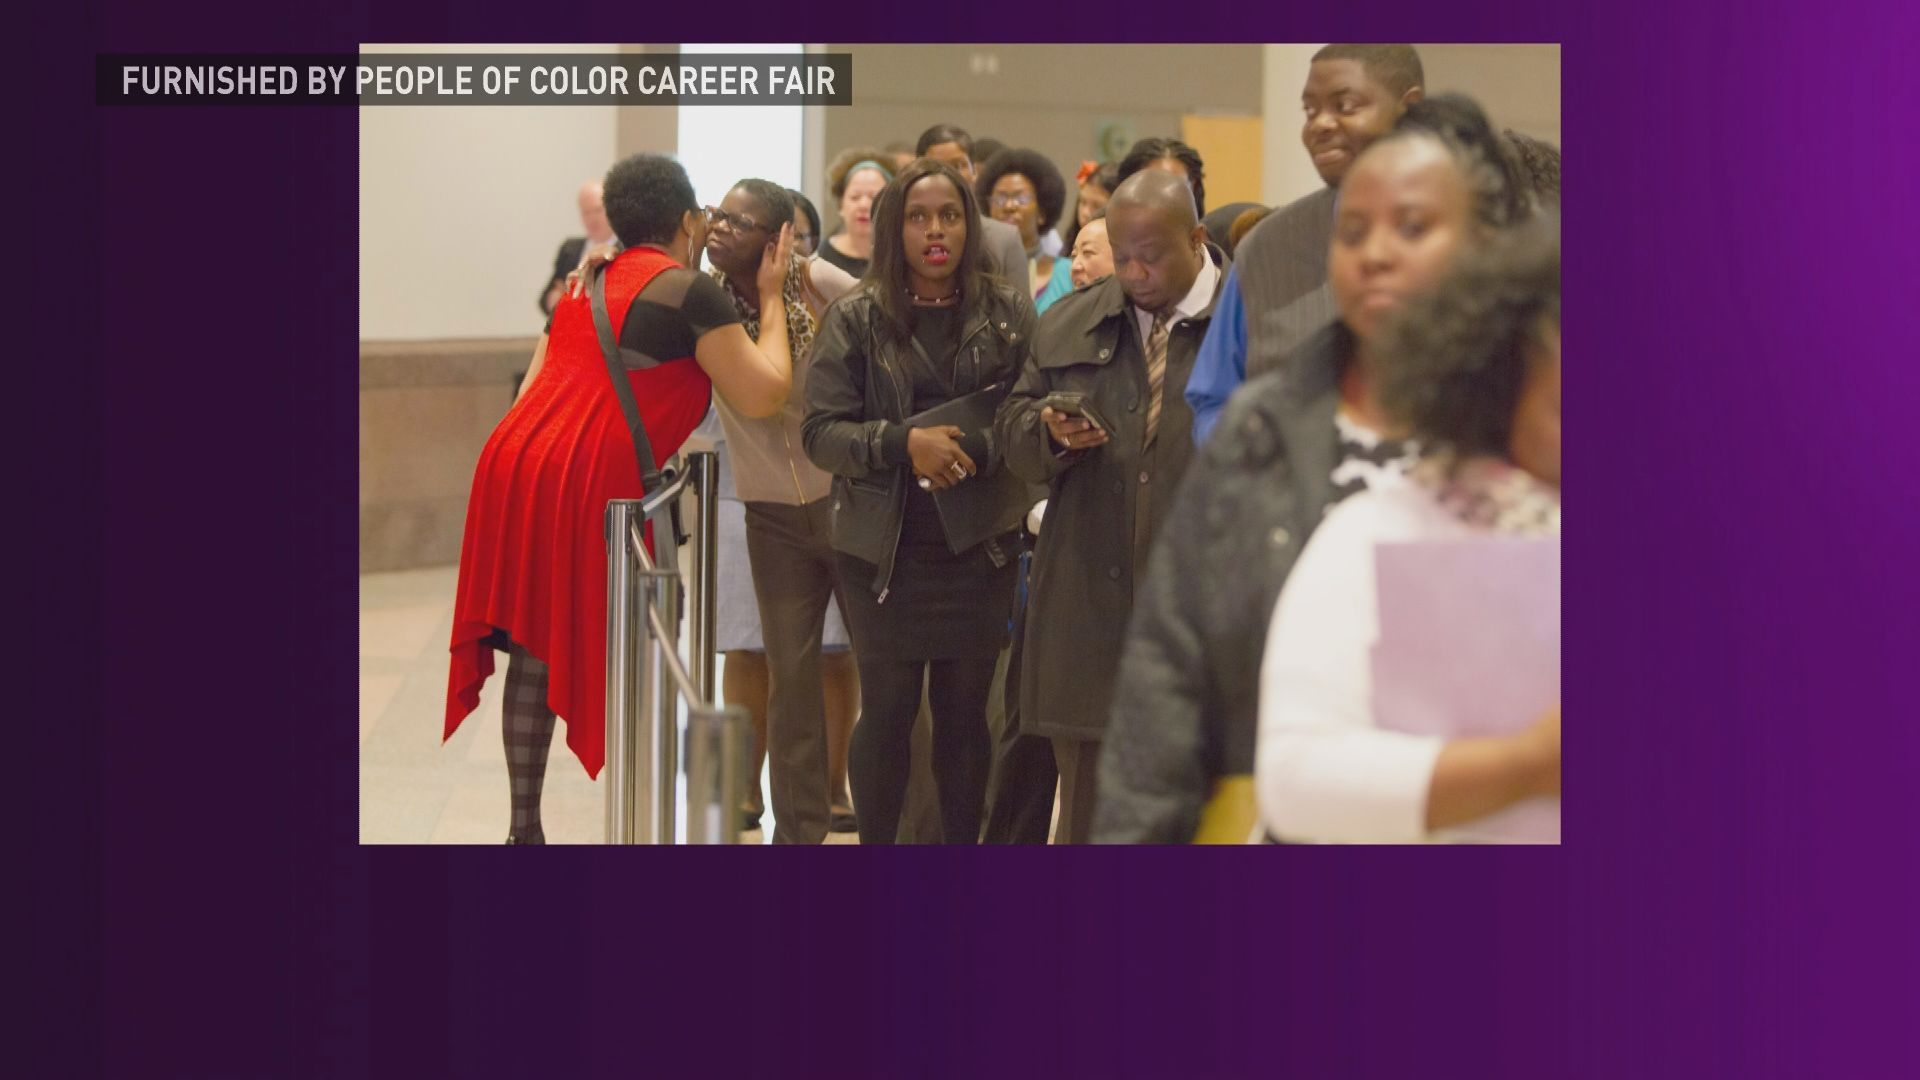 Blue apron job fair